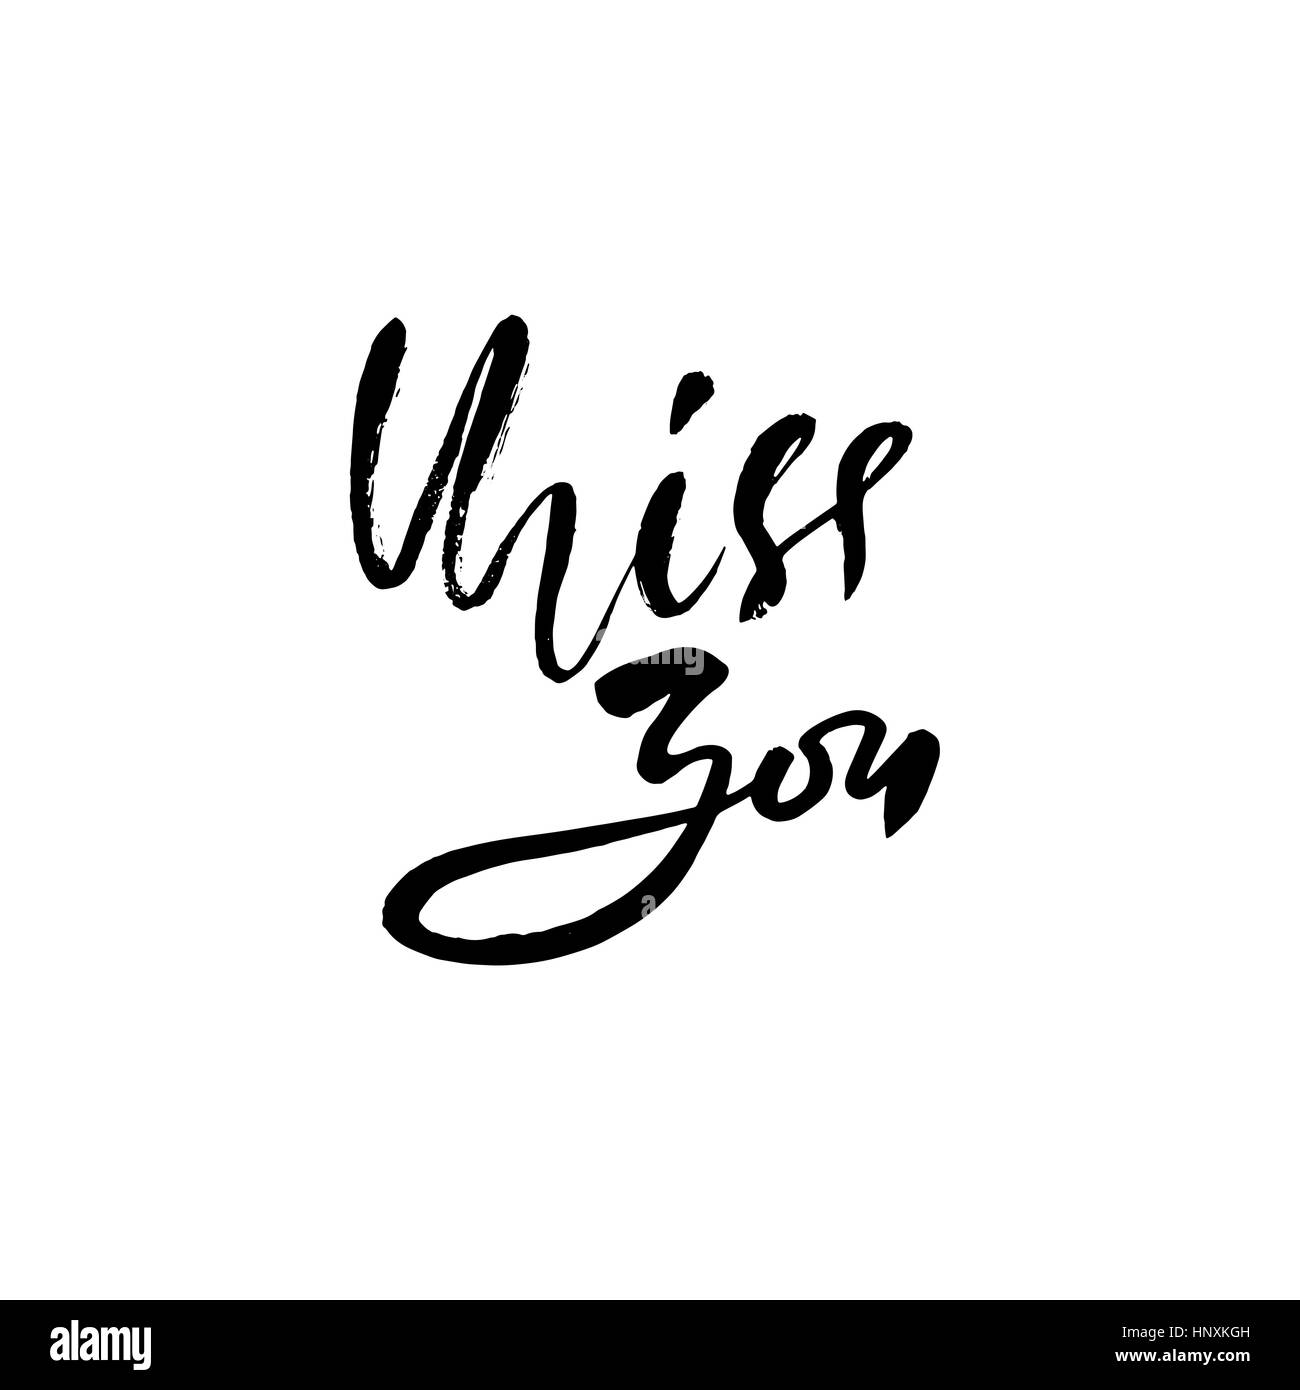 Miss you inscription greeting card with calligraphy hand drawn miss you inscription greeting card with calligraphy hand drawn lettering design vector typography kristyandbryce Image collections